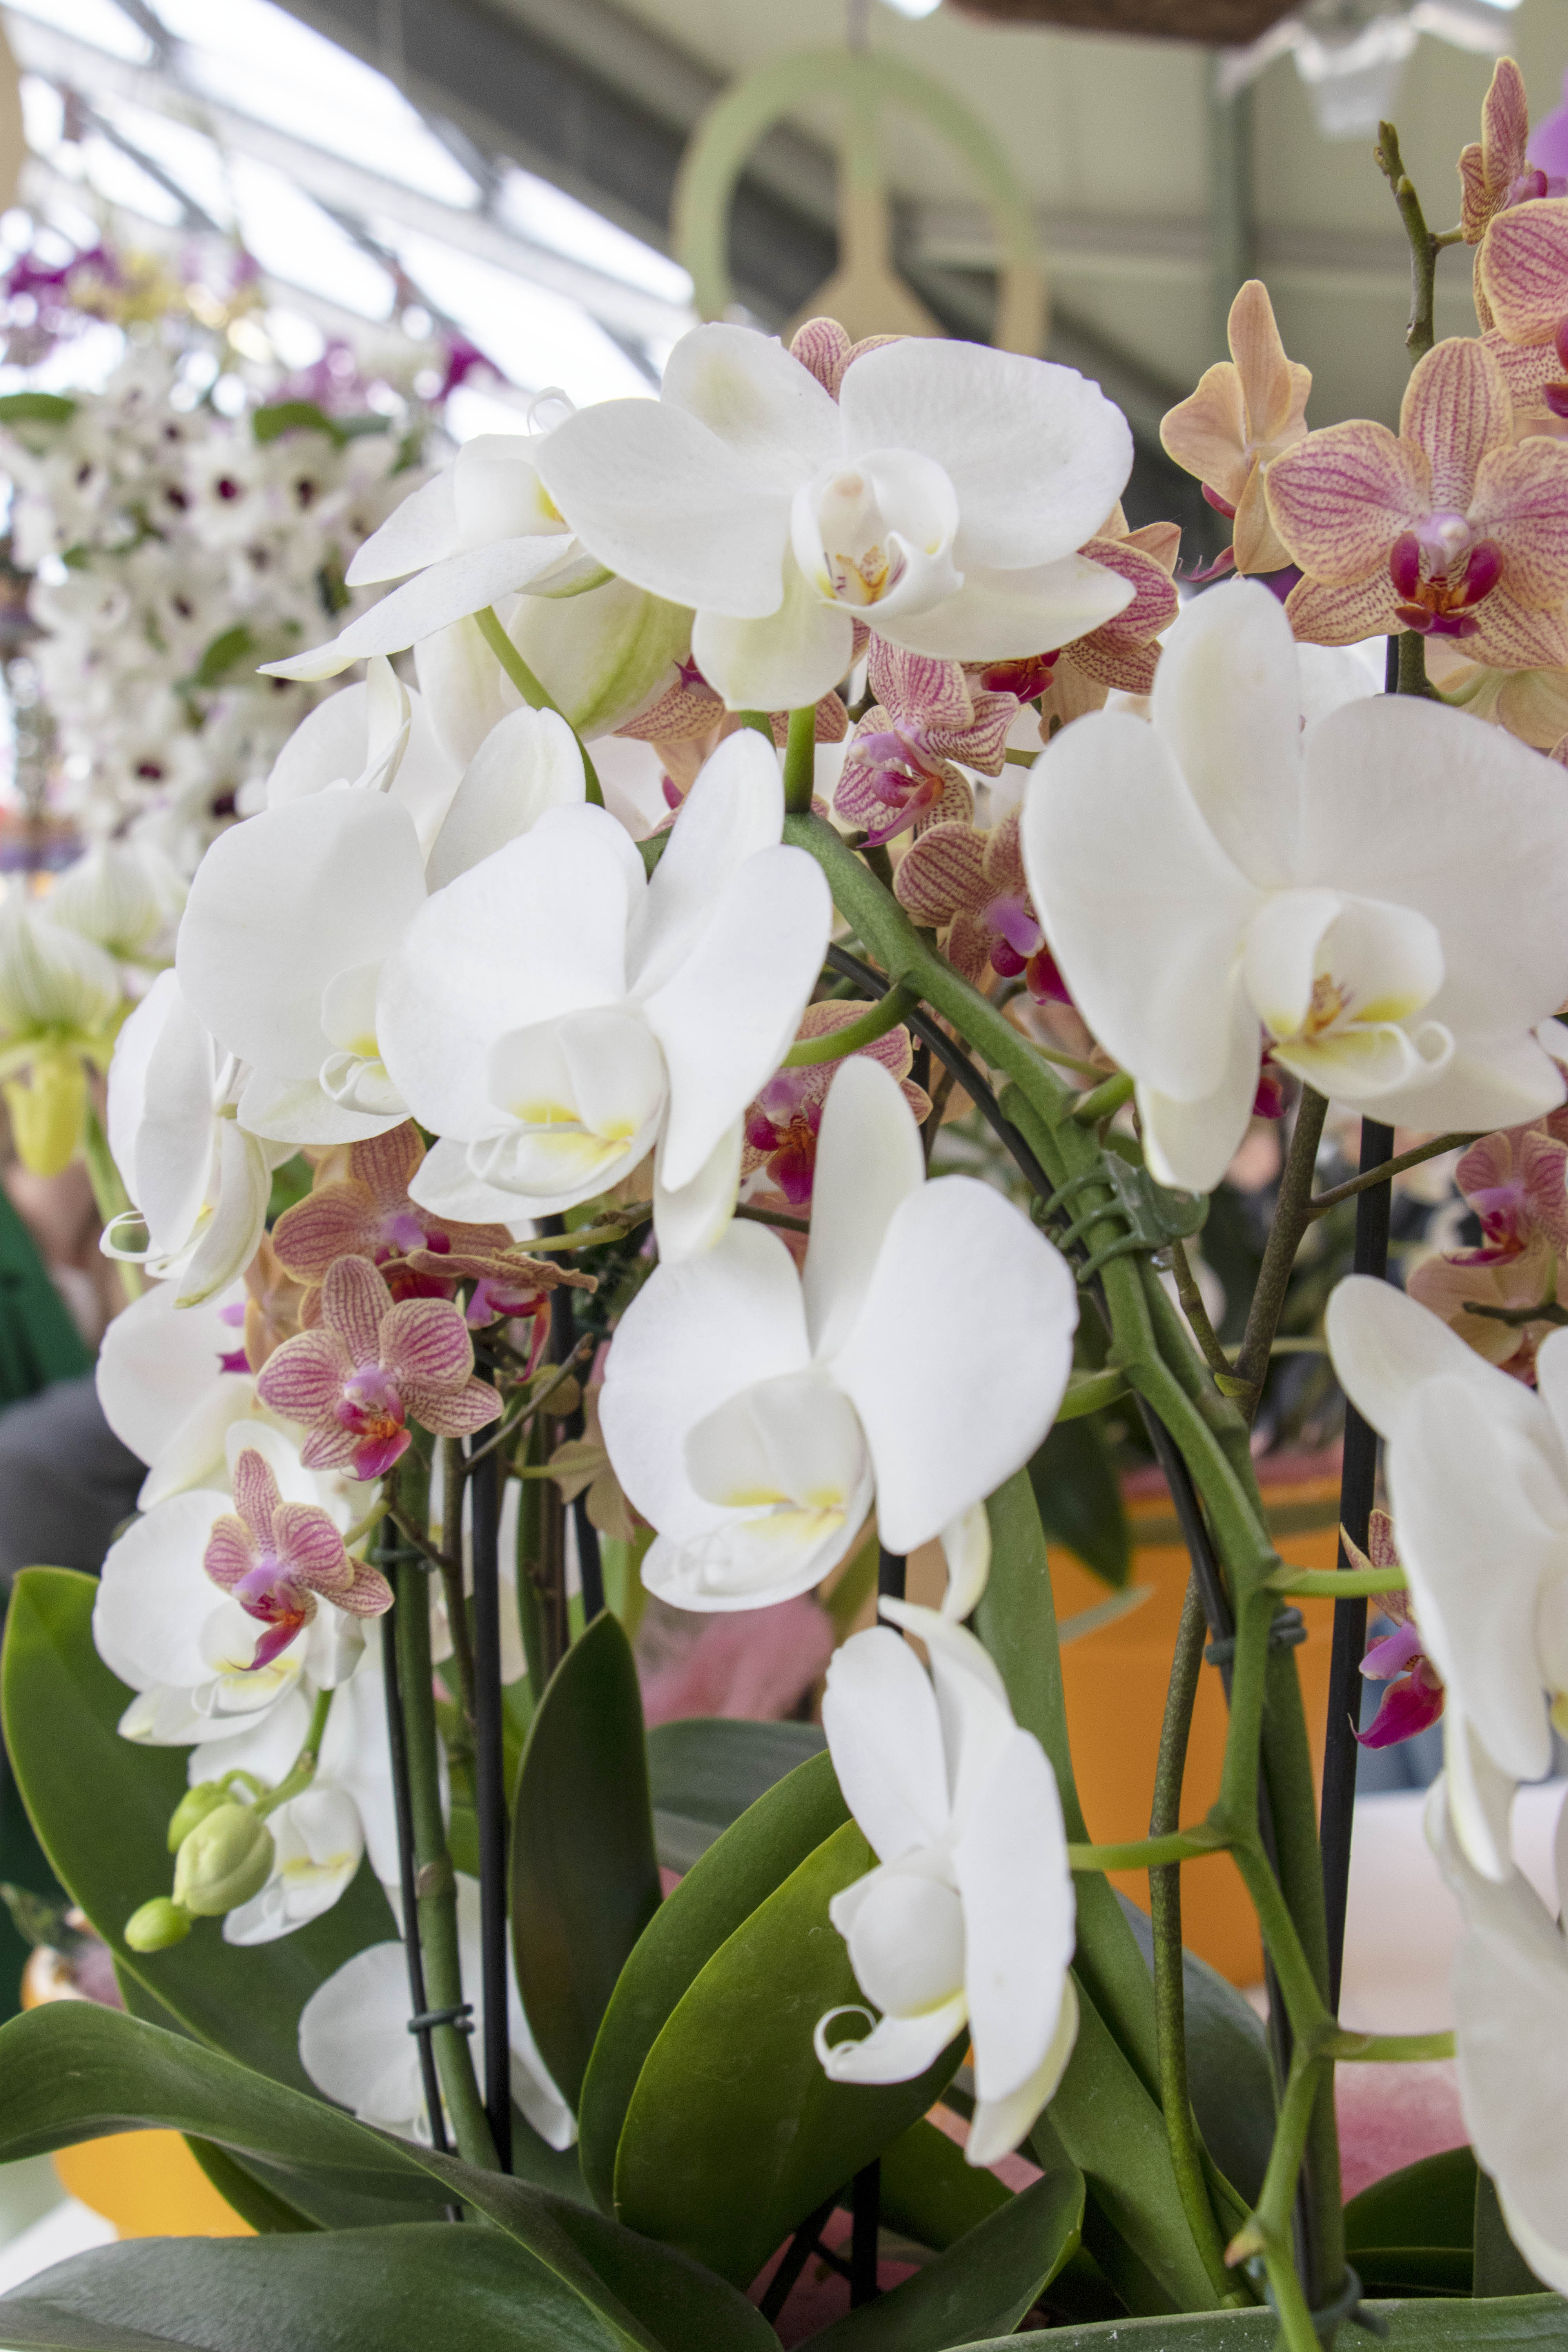 Orchids at Keukenhof, Lisse, Netherlands